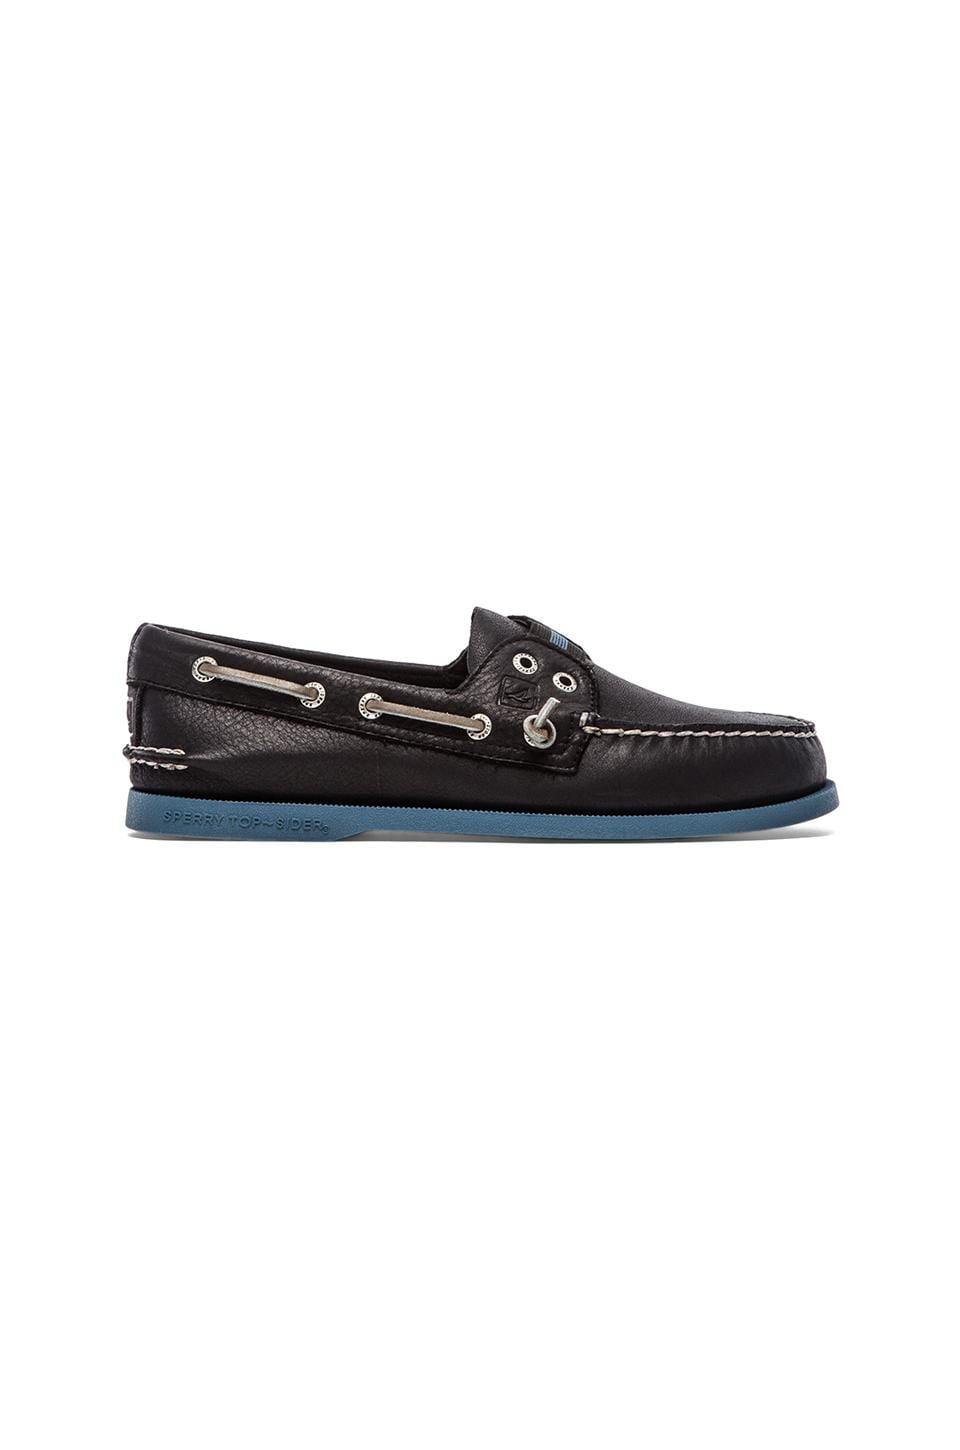 Sperry Top-Sider A/O Gore Colored in Black & Blue